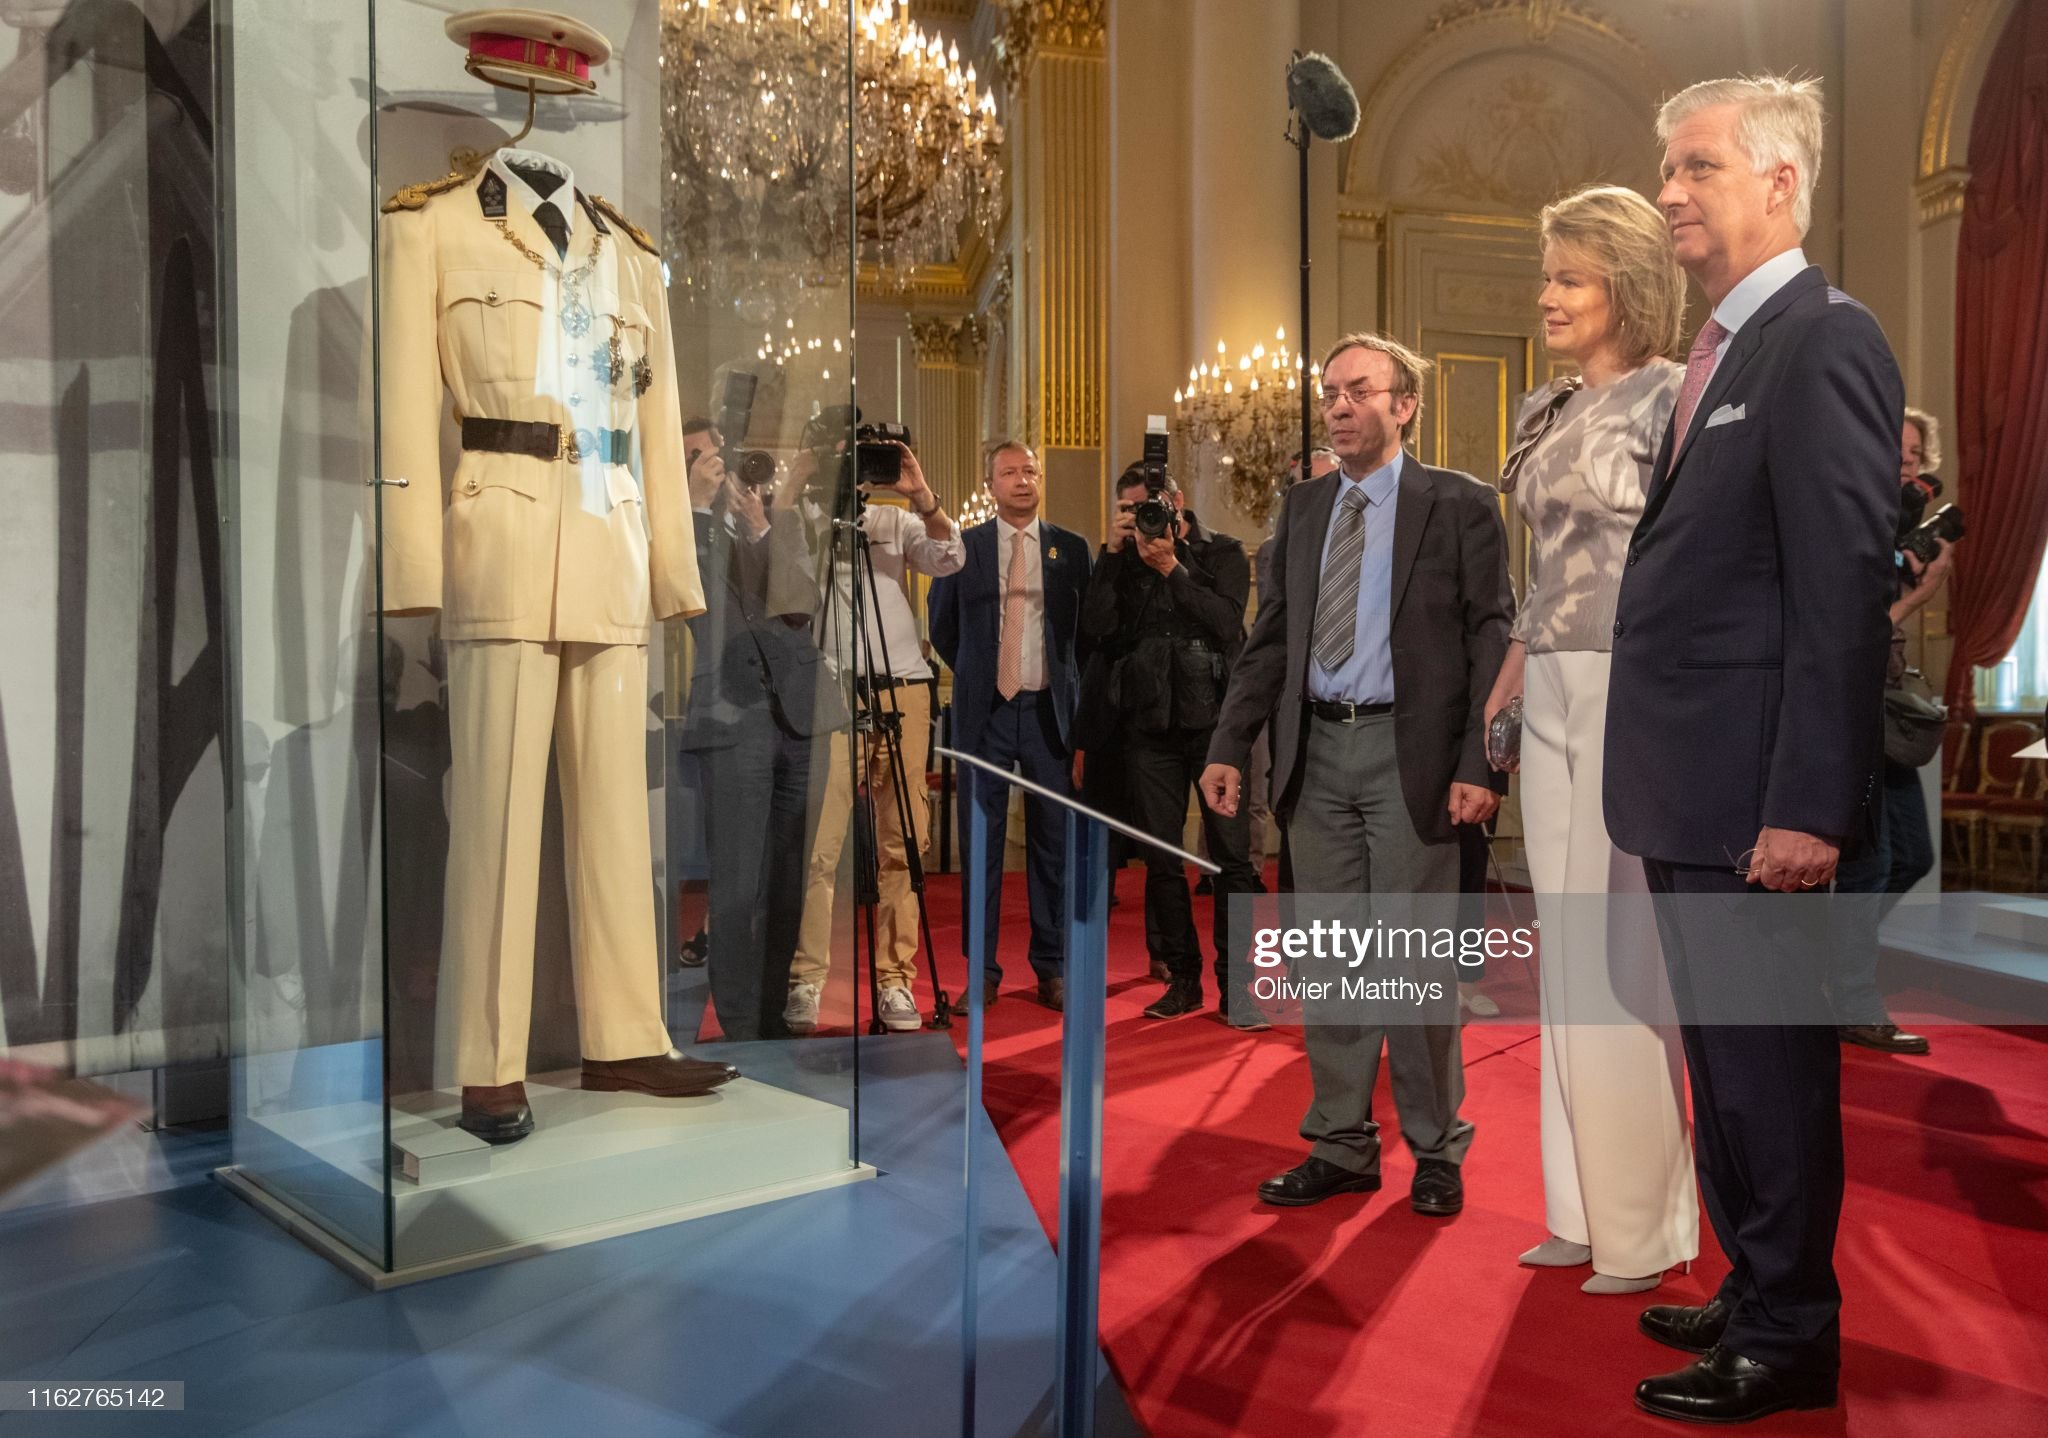 CASA REAL BELGA - Página 54 King-philippe-of-belgium-and-queen-mathilde-look-at-the-white-uniform-picture-id1162765142?s=2048x2048